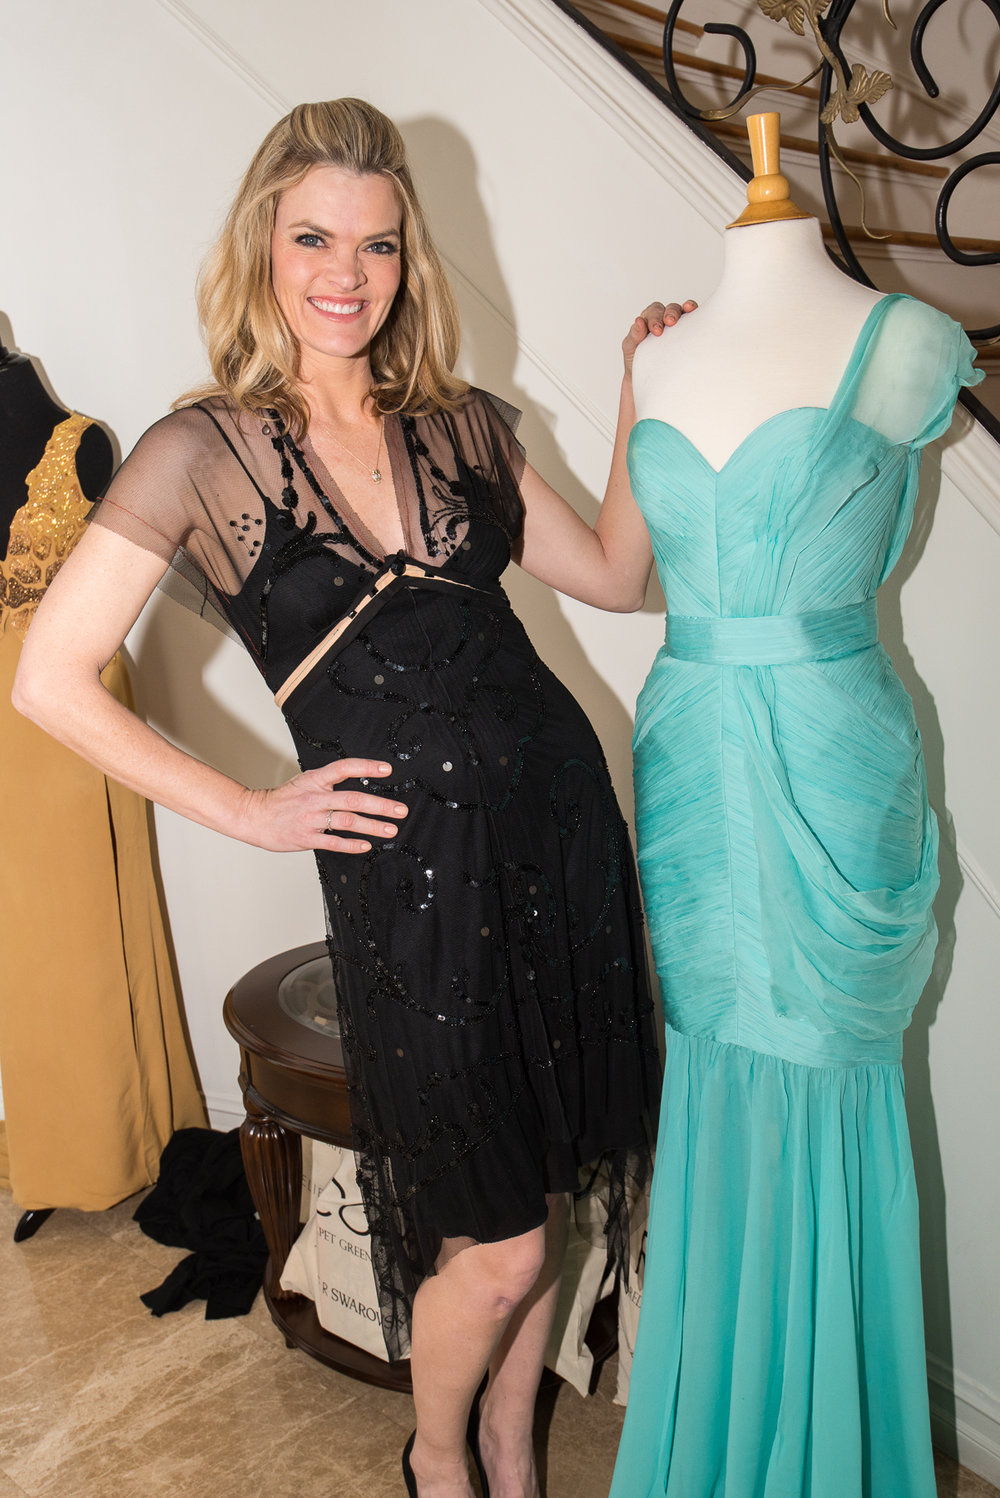 2012 Red Carpet Green Dress Celebrity Ambassador Missi Pyle reminisces her Oscar win next to her memorable sustainable gown.